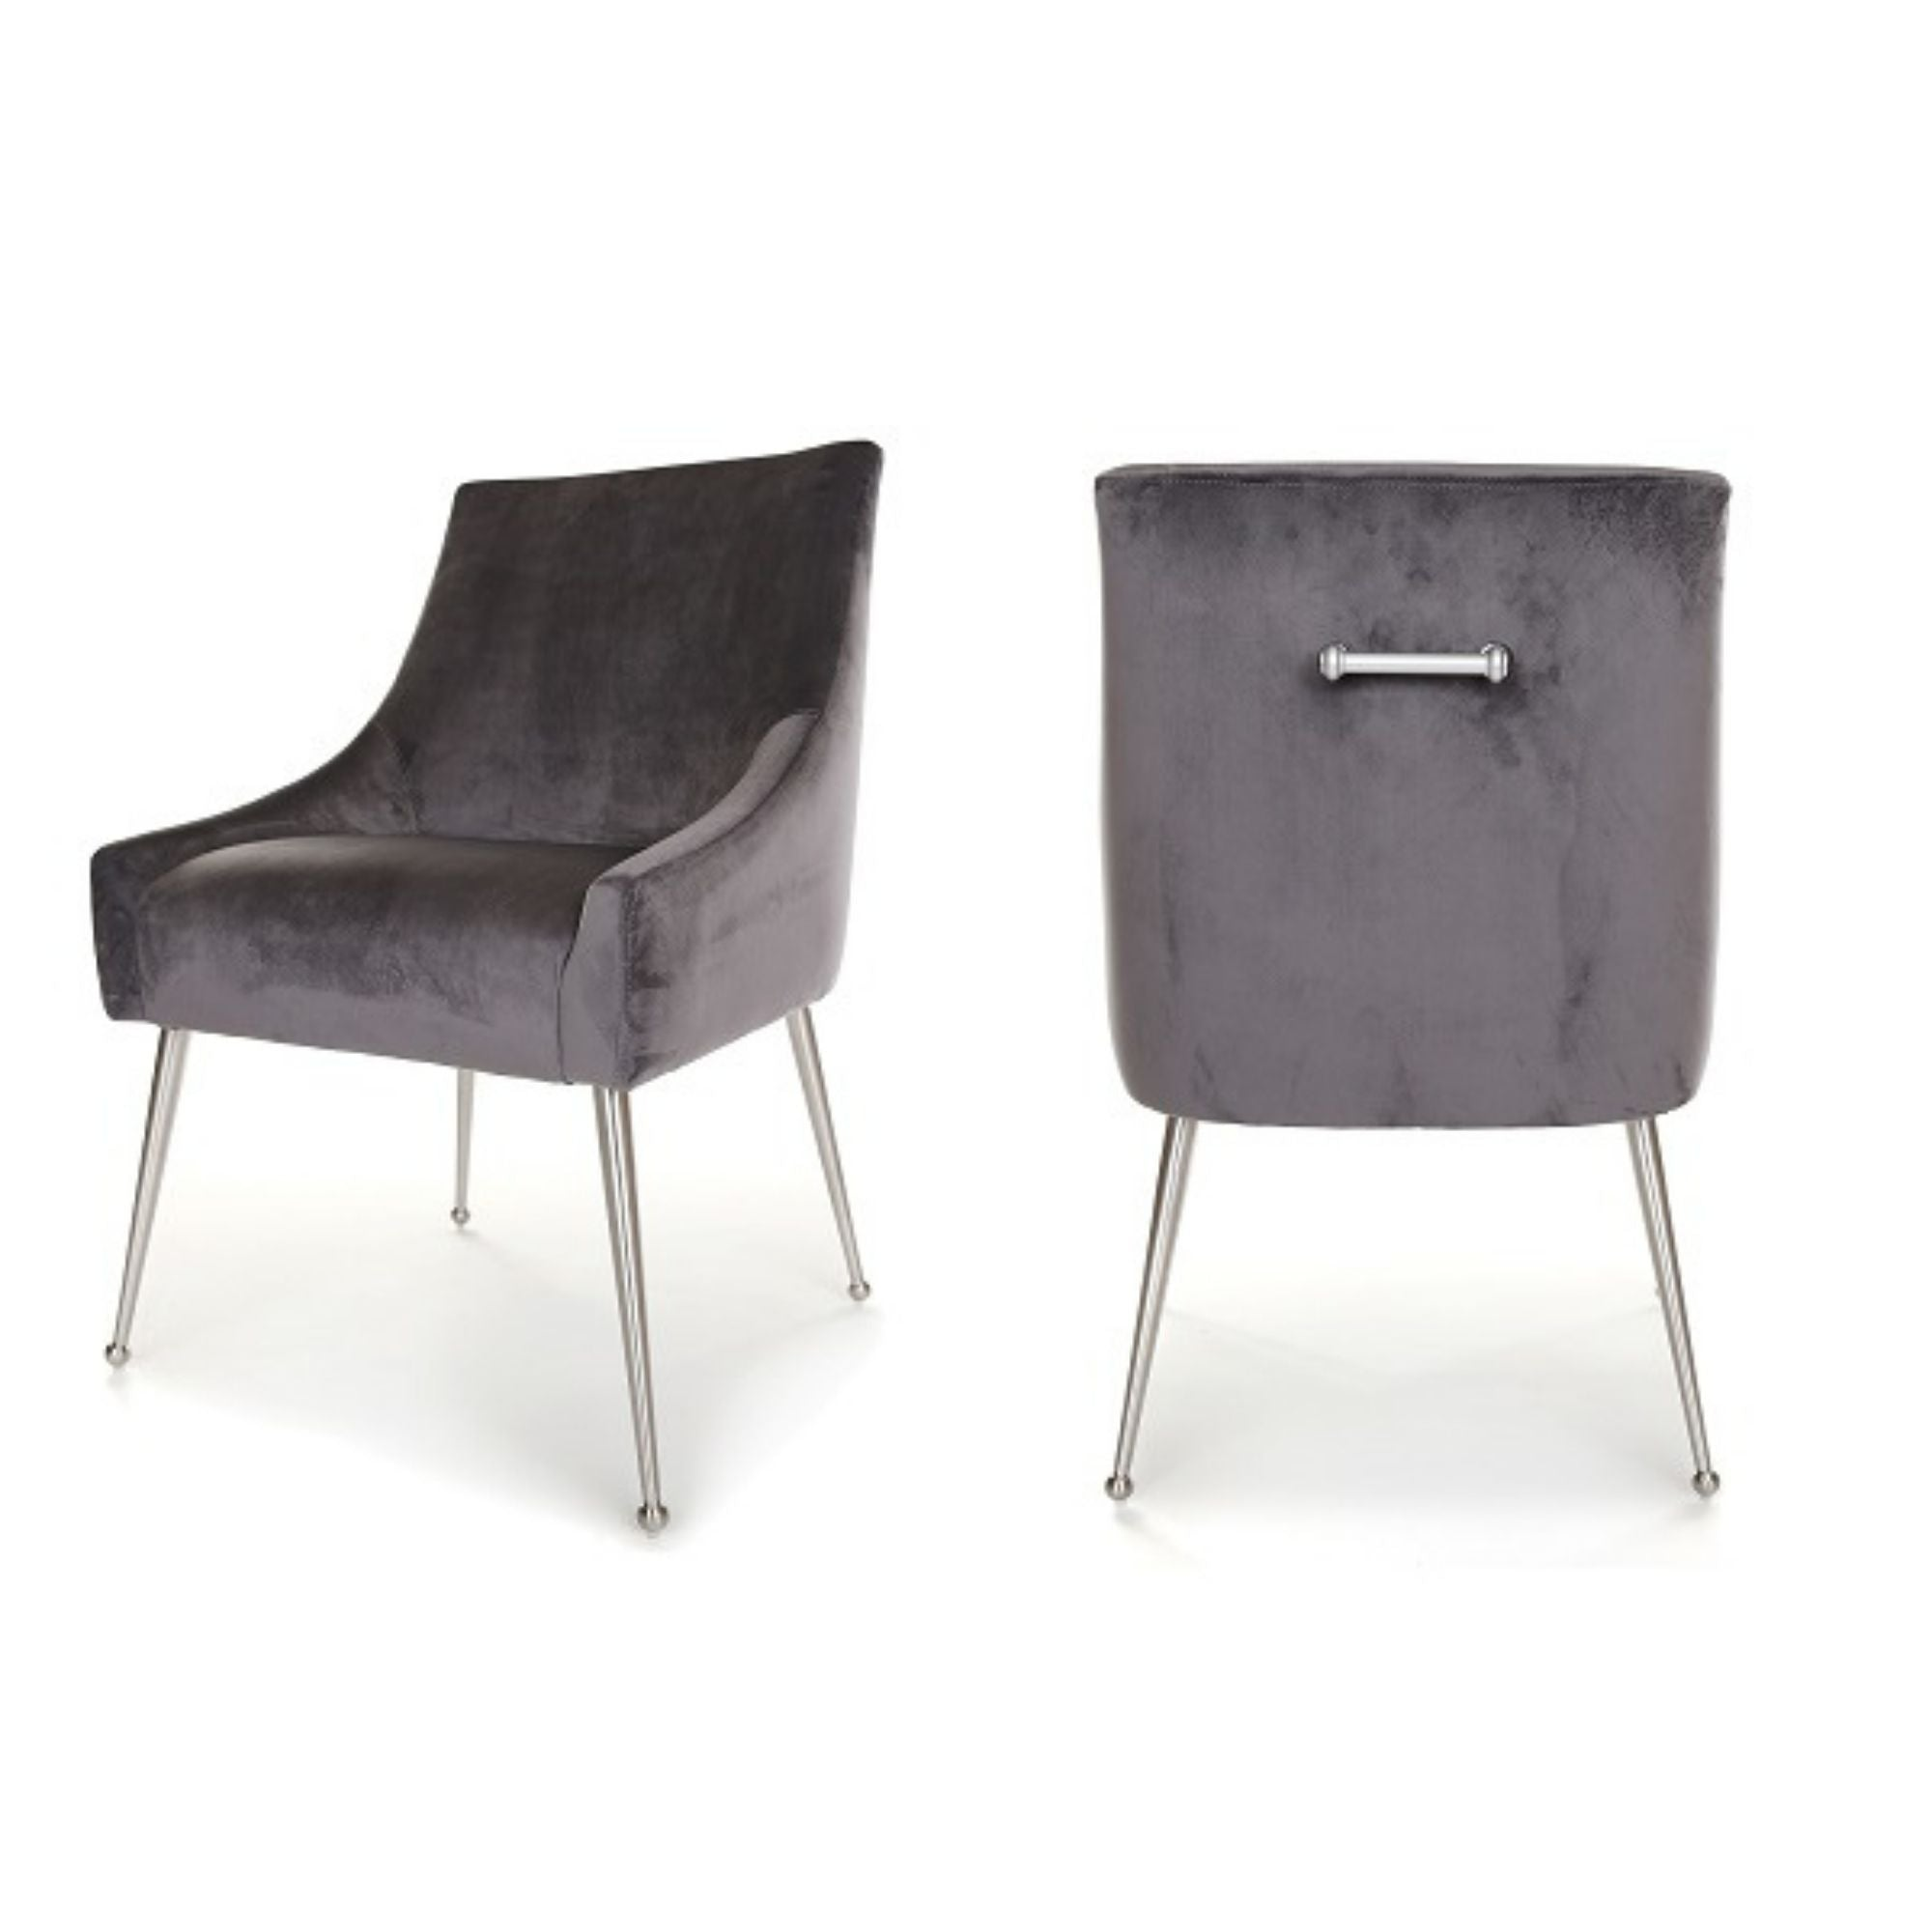 Finn Dining Chair, main image. Upholstered in Dark Grey Velvet, with polished silver legs and handle